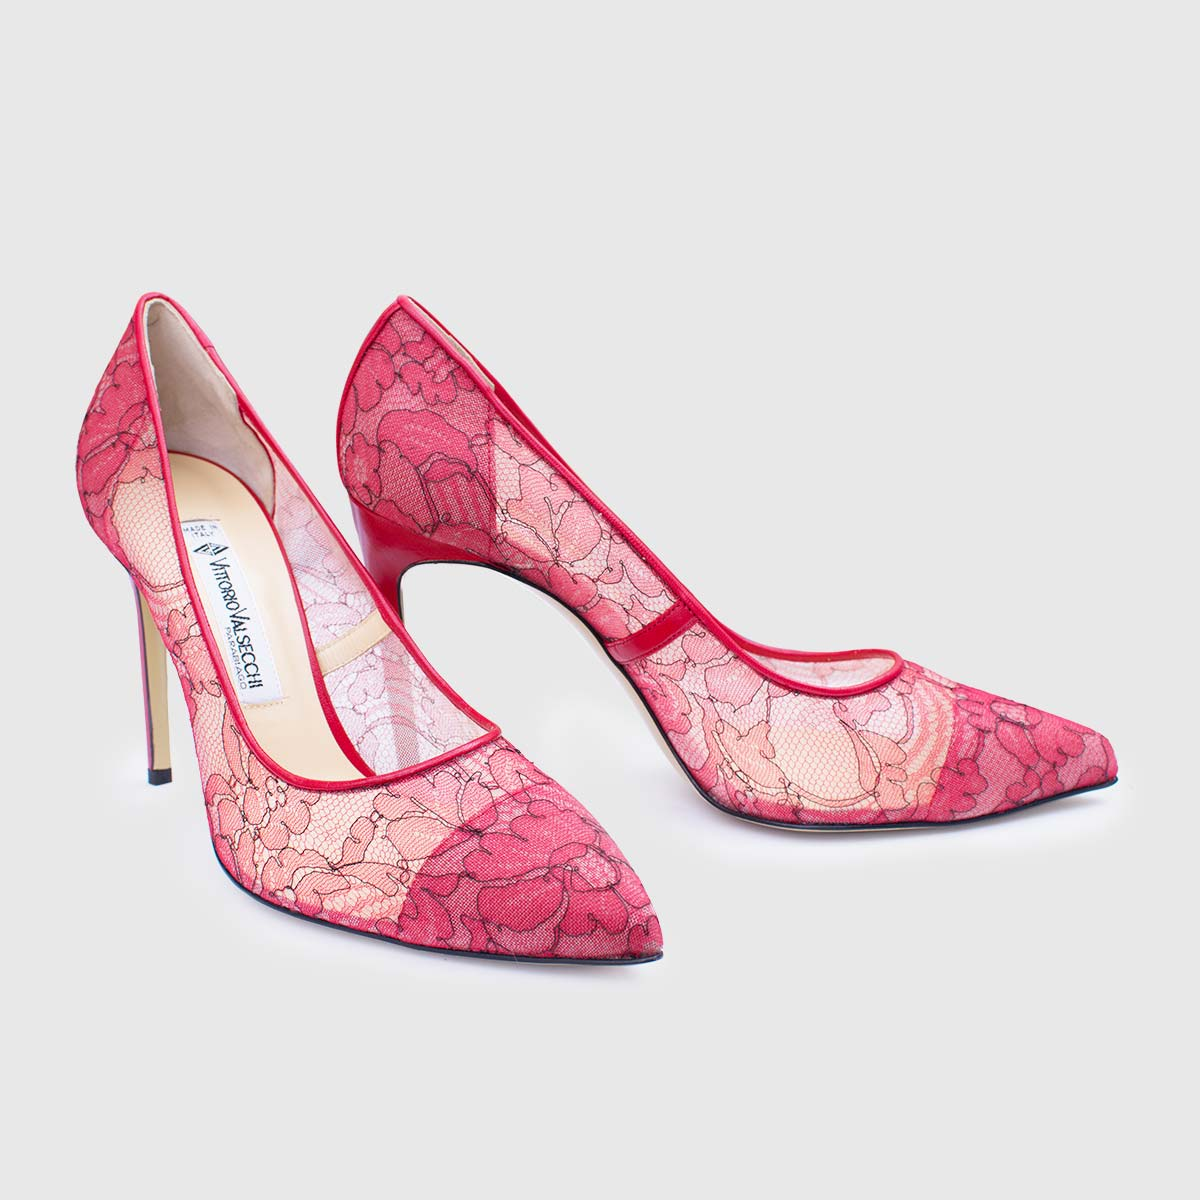 Viva Pump 100 Red Lace